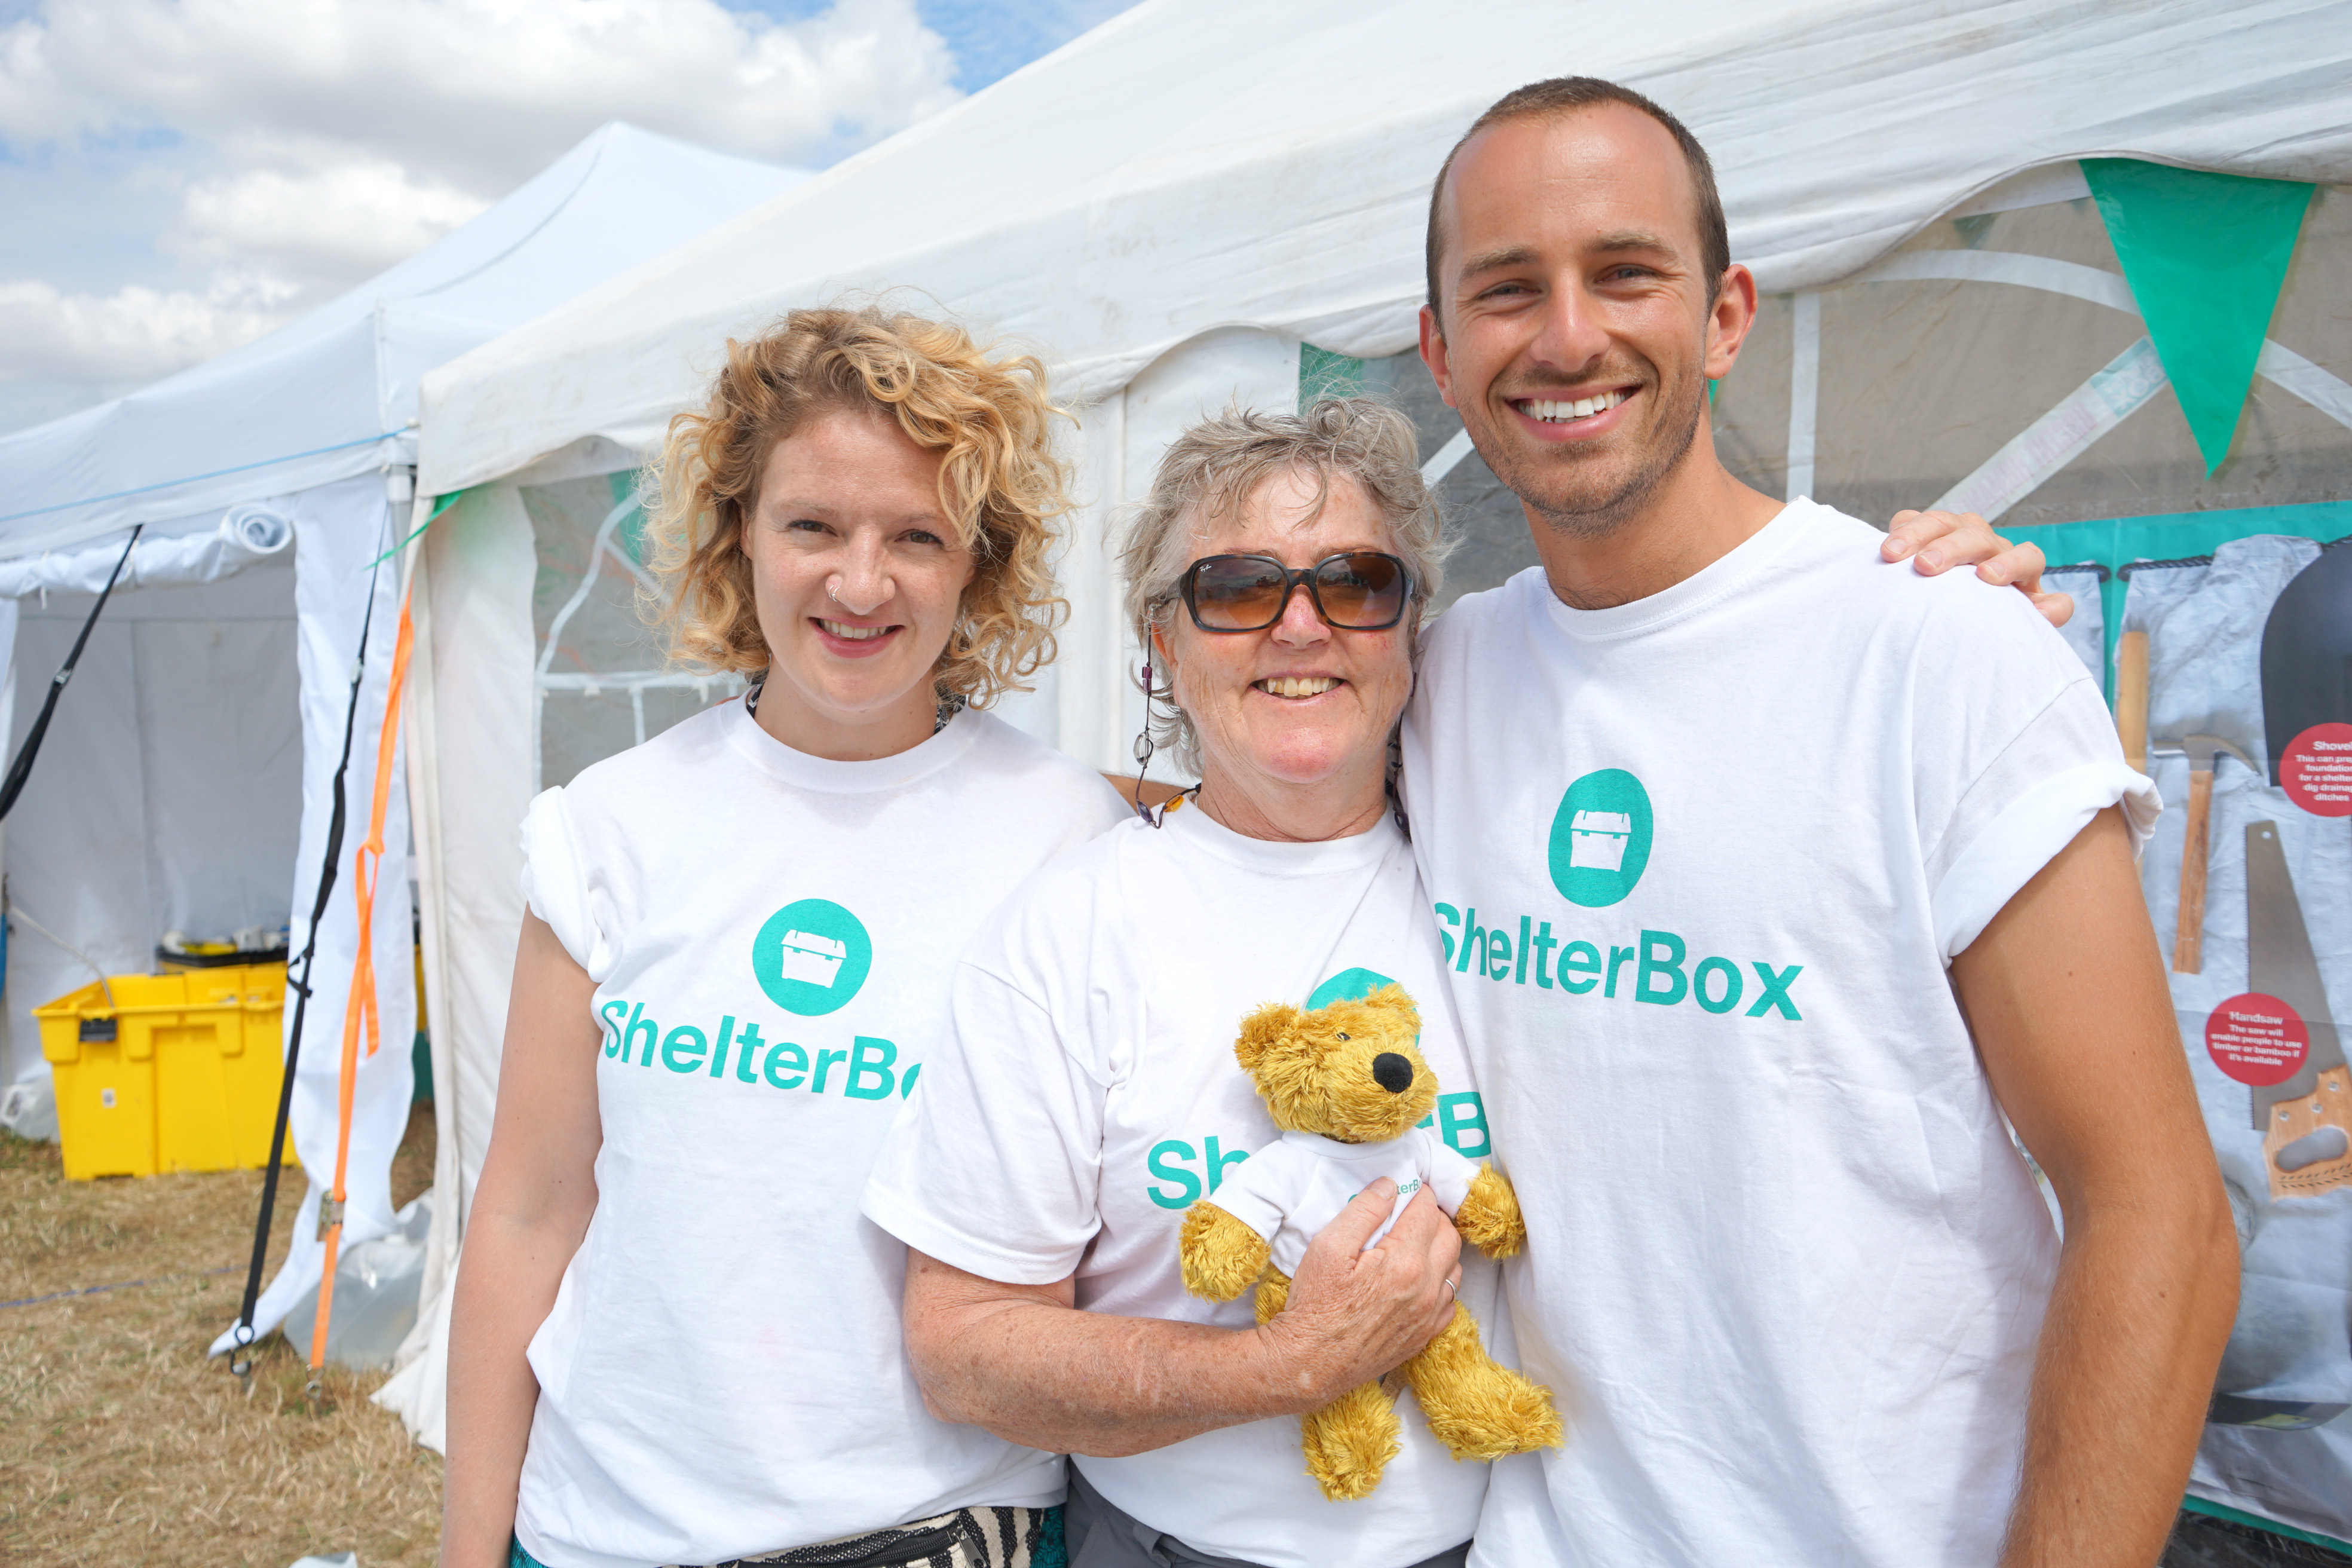 ShelterBox volunteers helping raise funds at an event